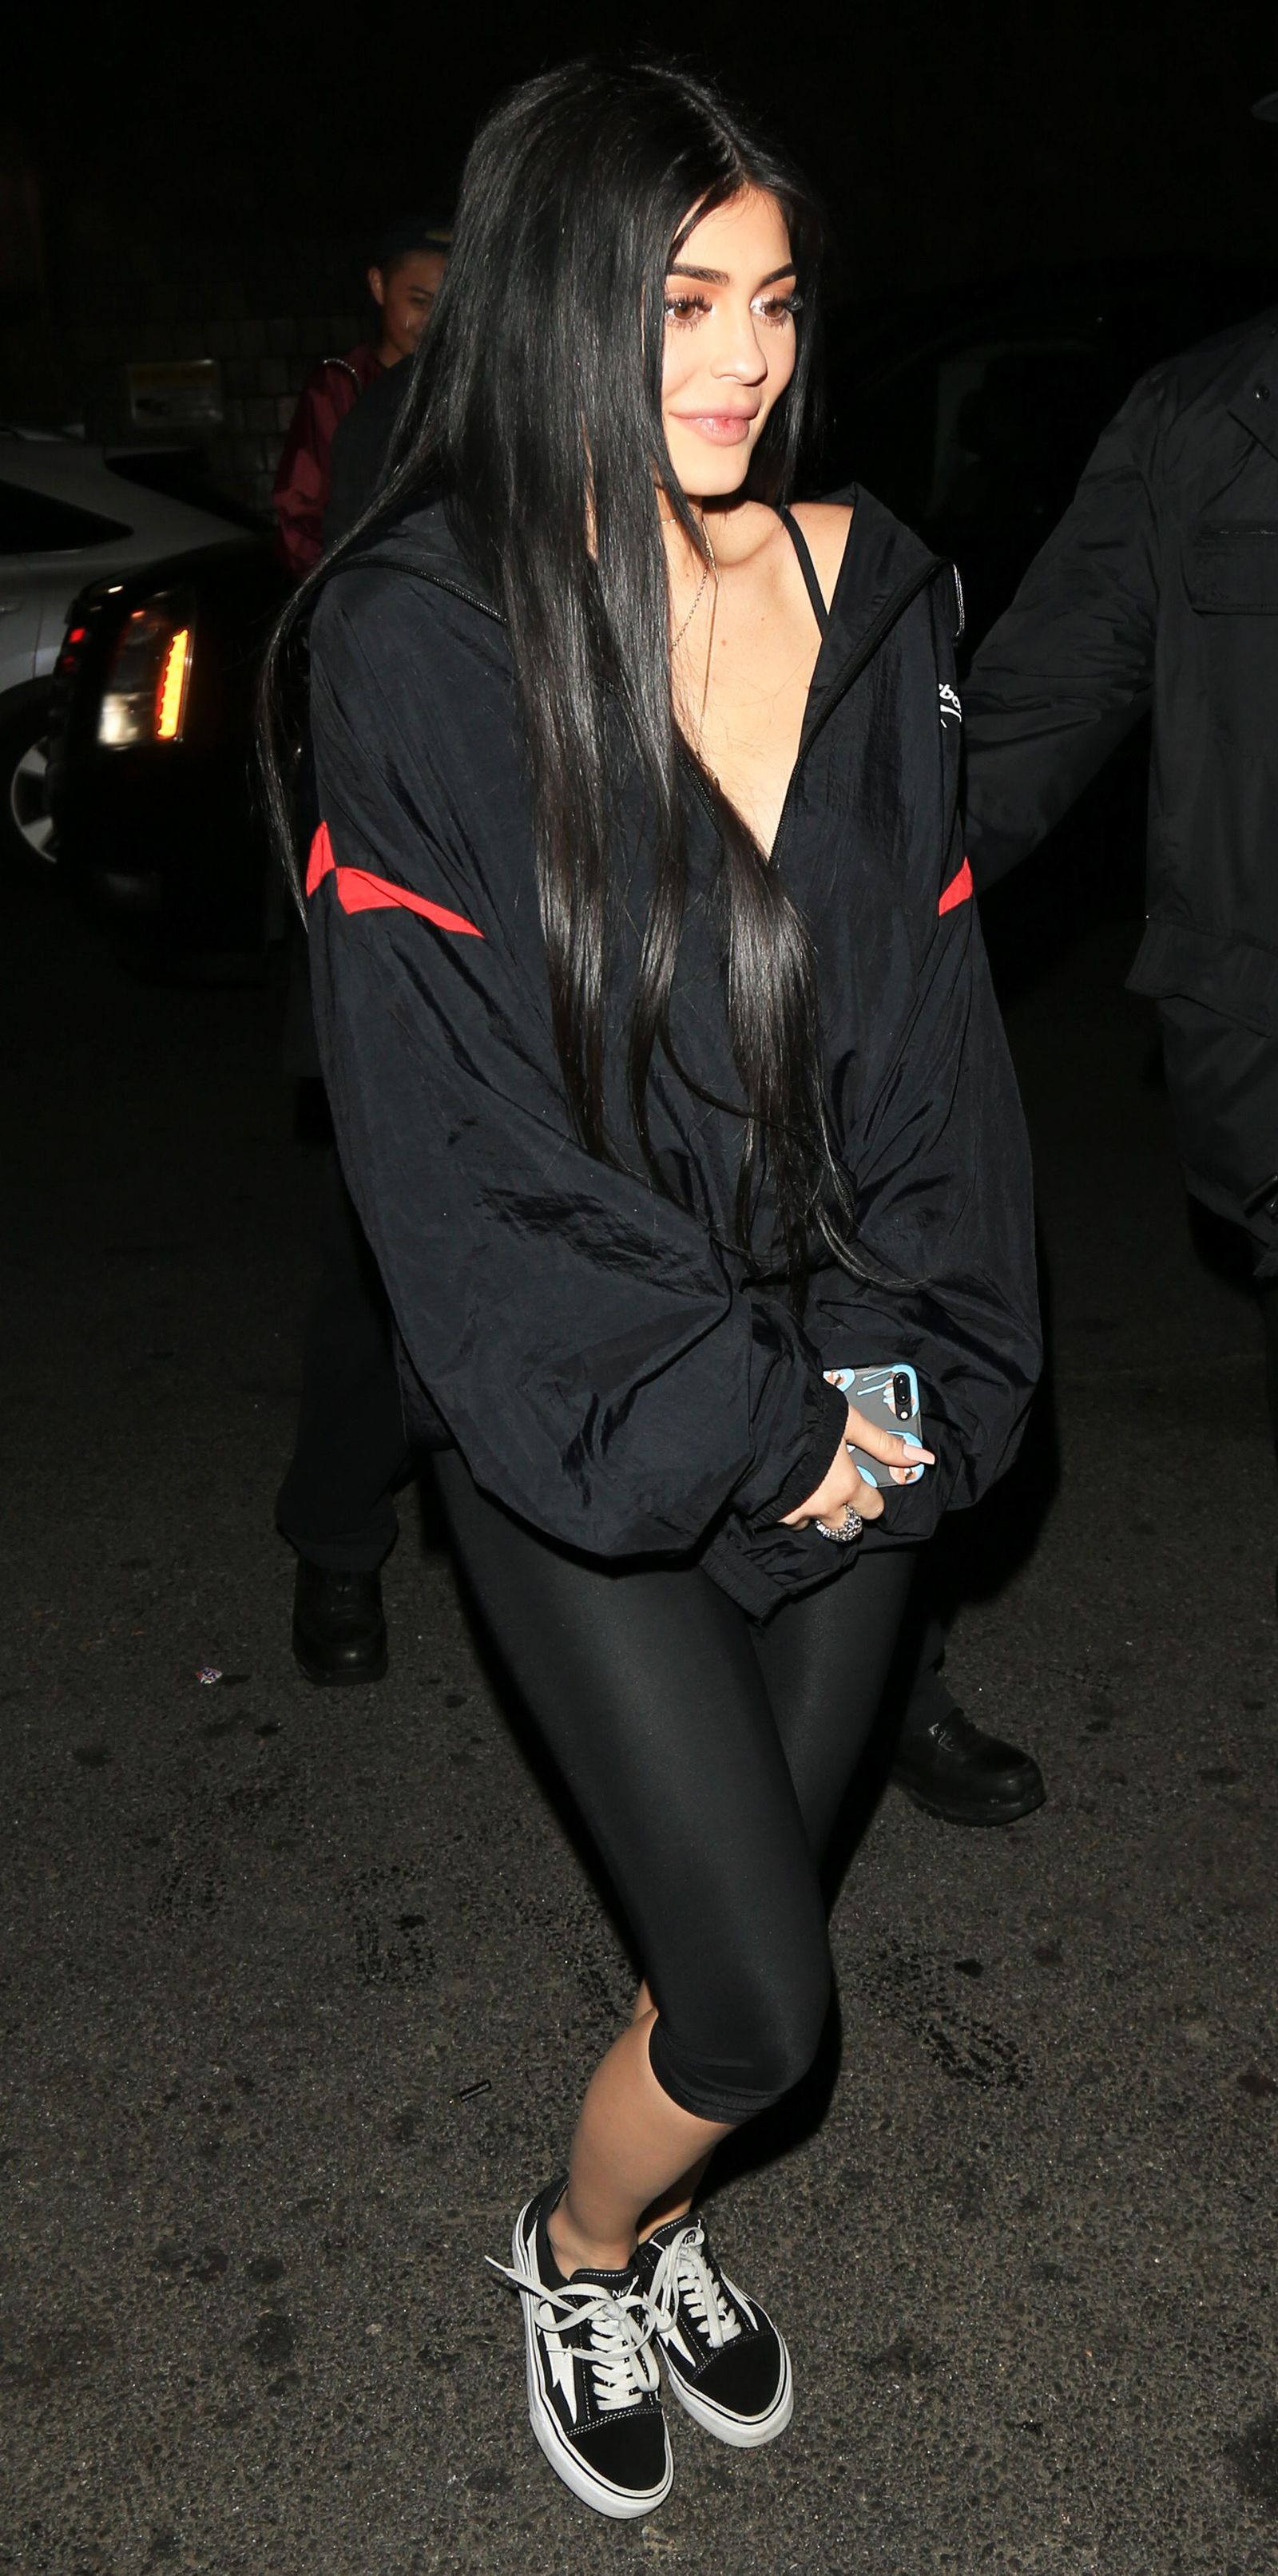 Kylie jenner best pictures